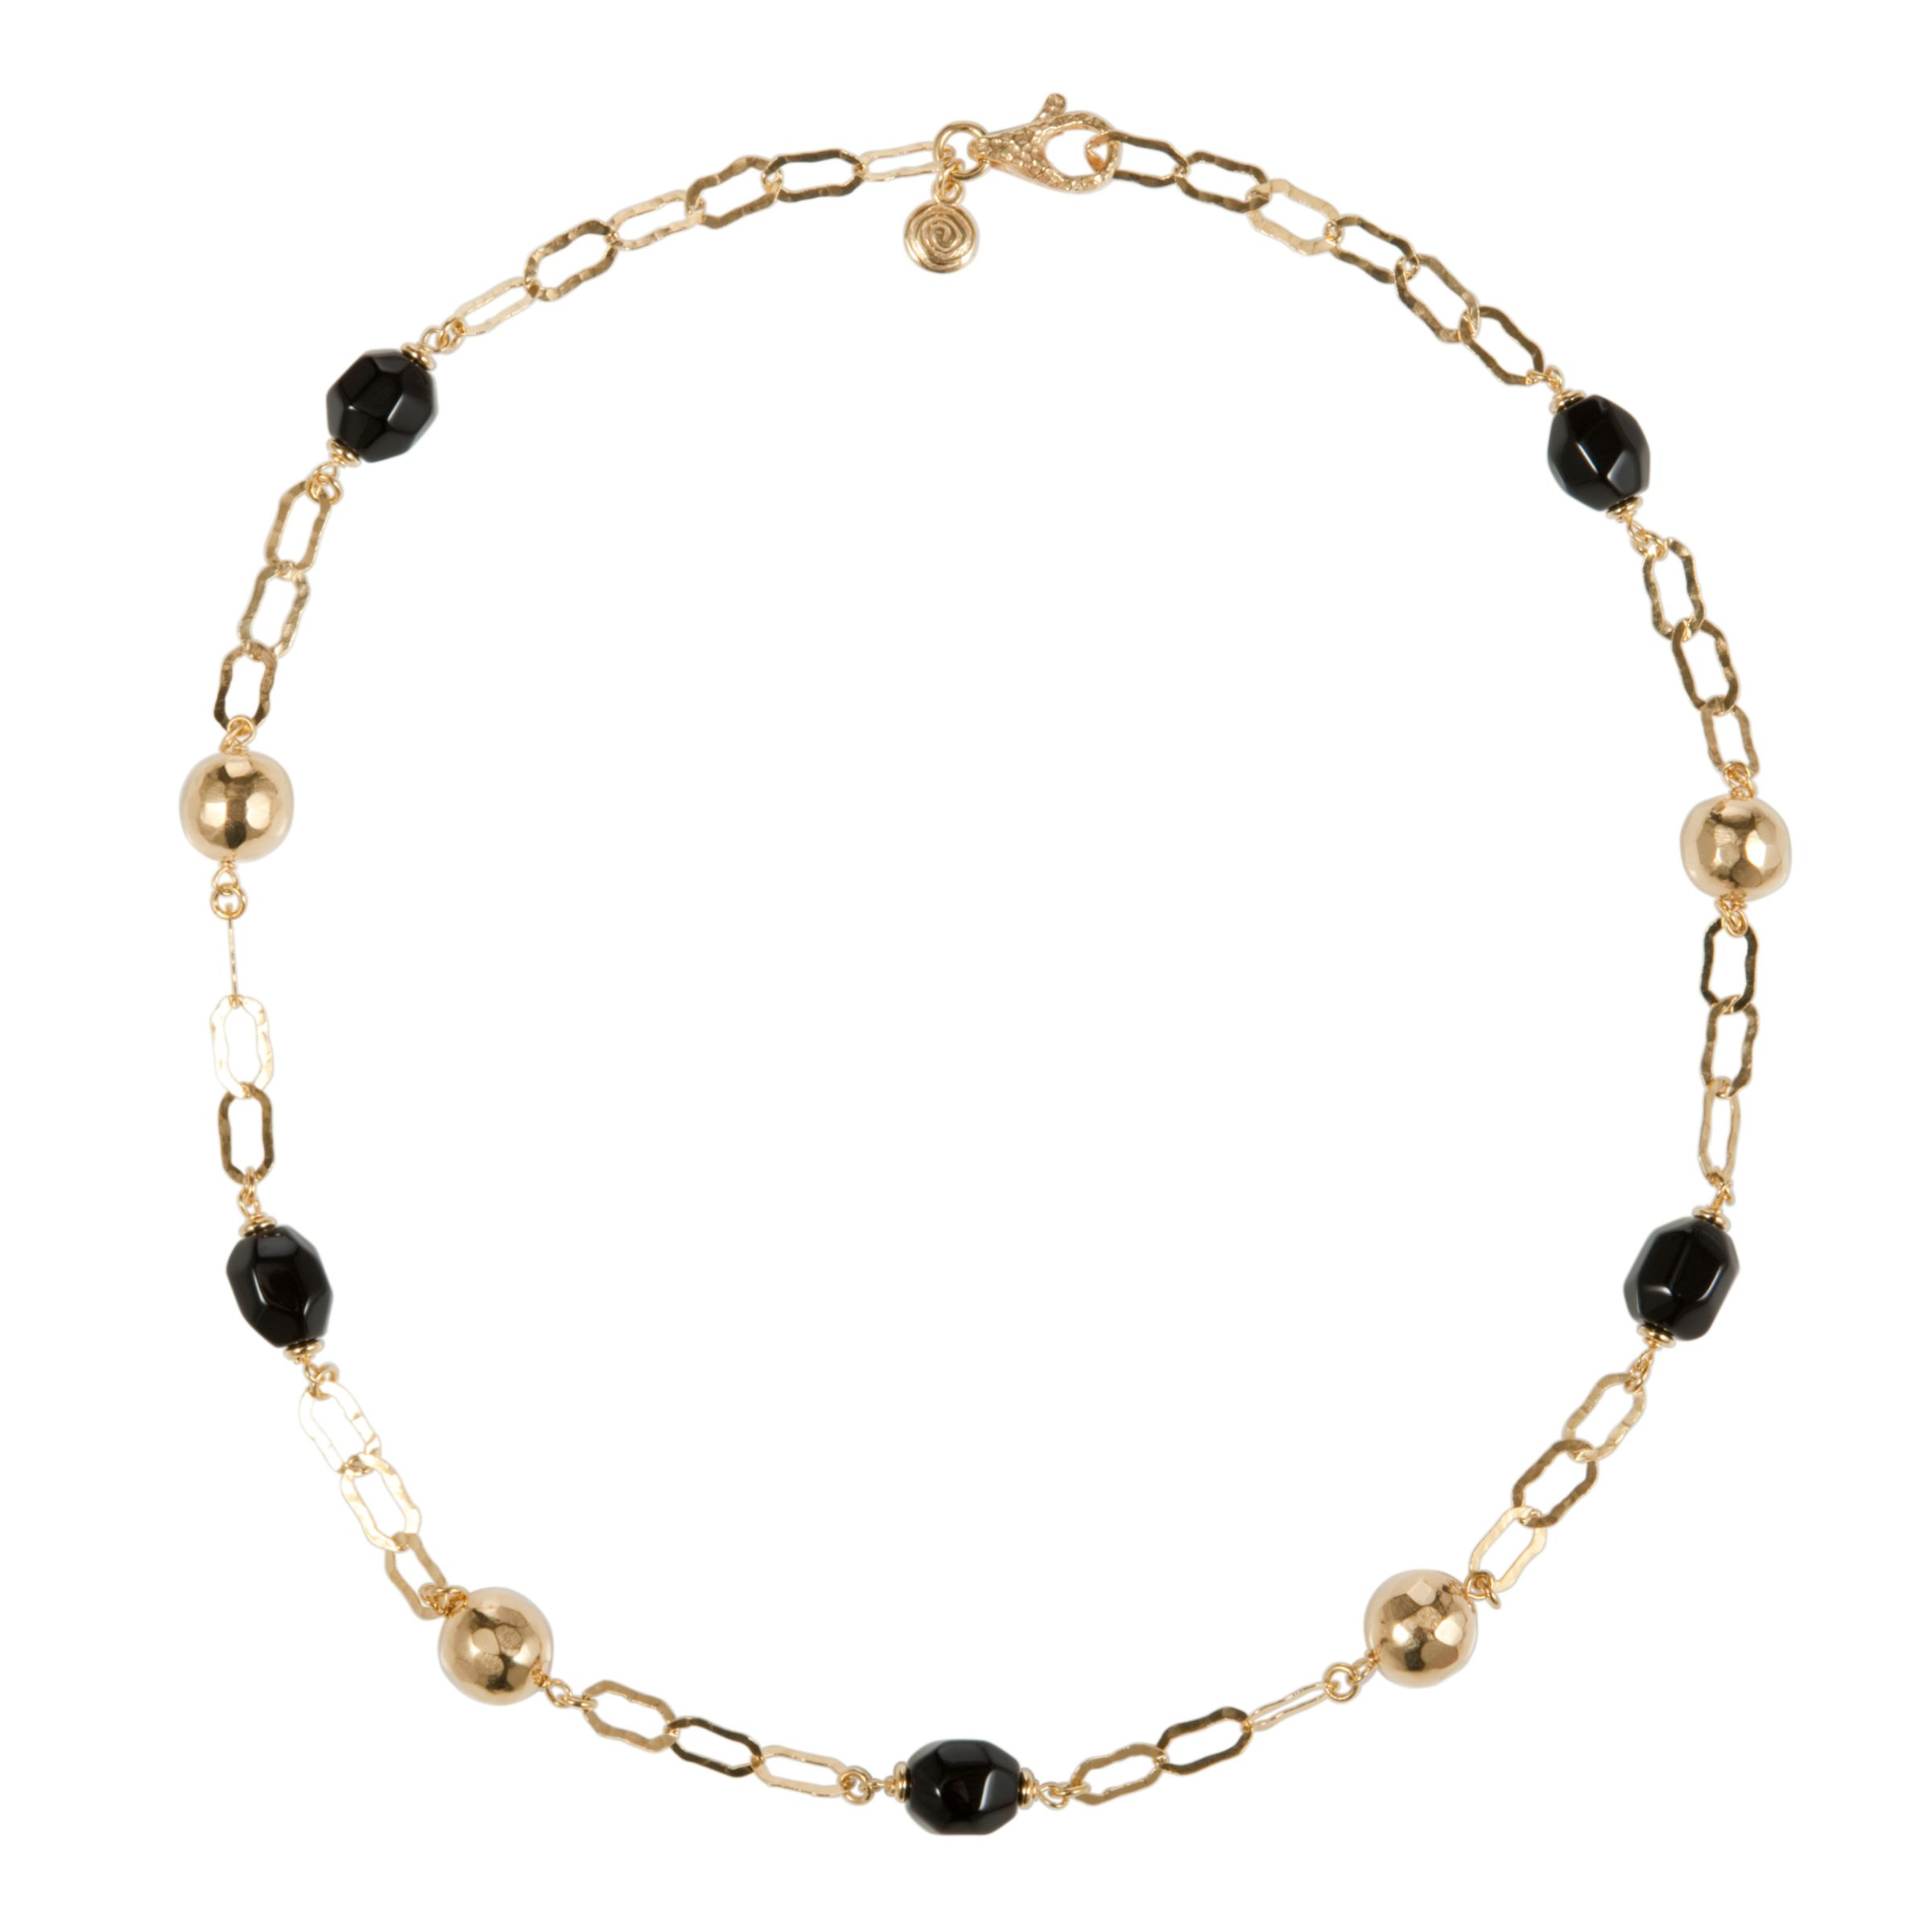 Etrusca 18ct Gold Plated Gemstone Link Nugget Necklace